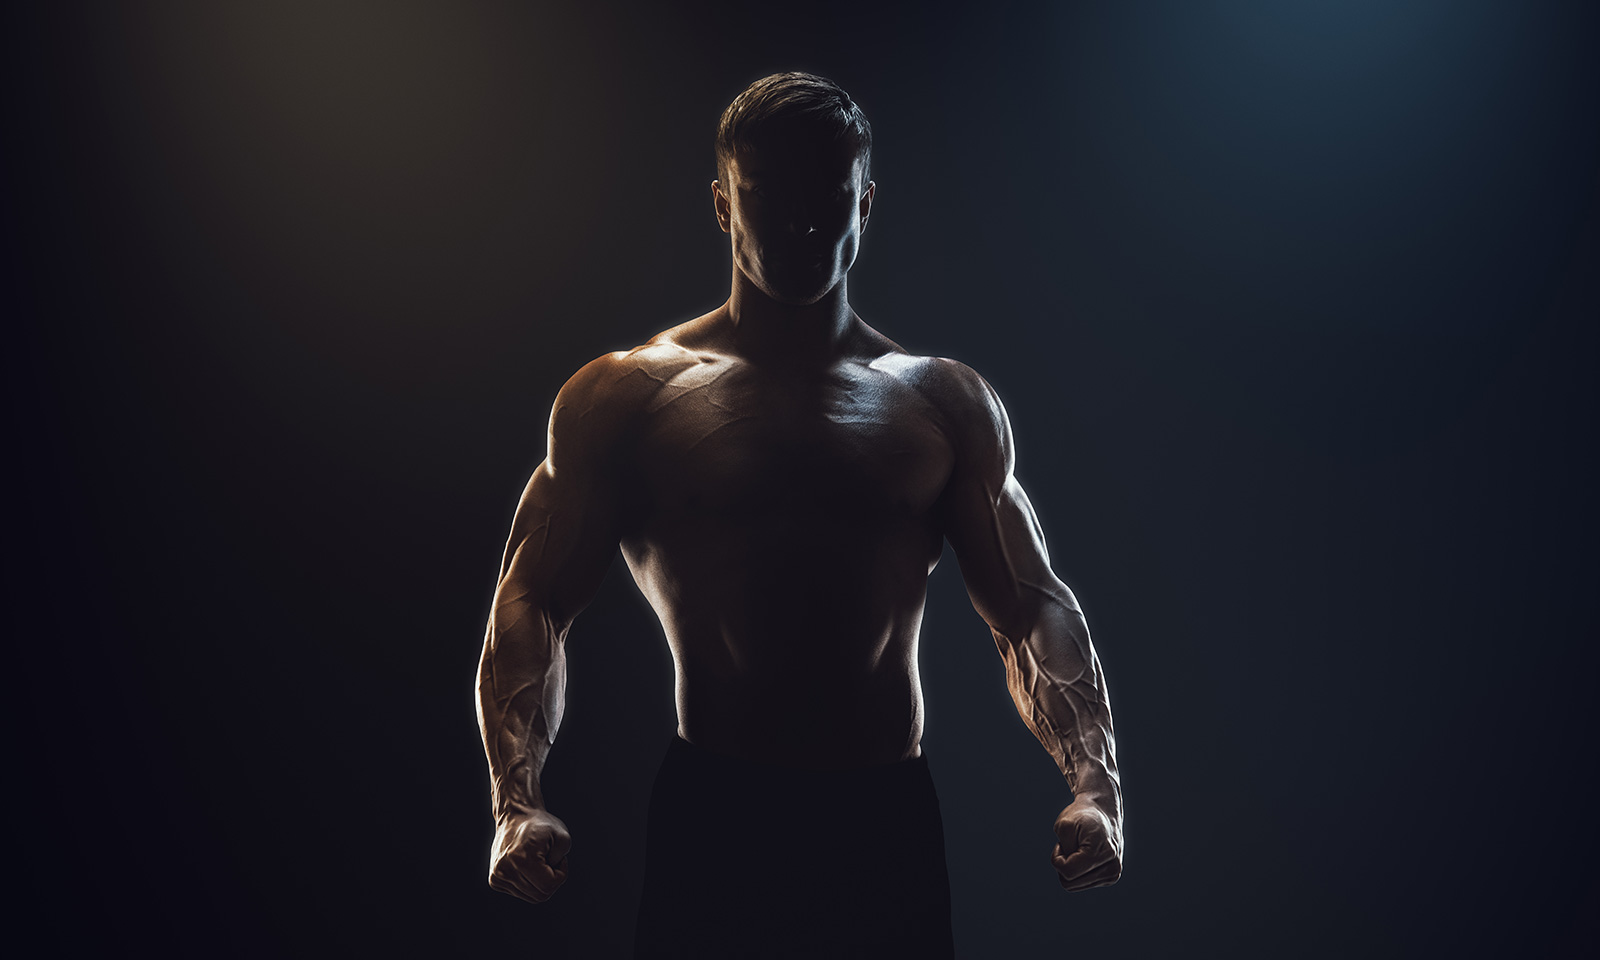 Effective Ways Of Getting Stronger Without Getting Bigger